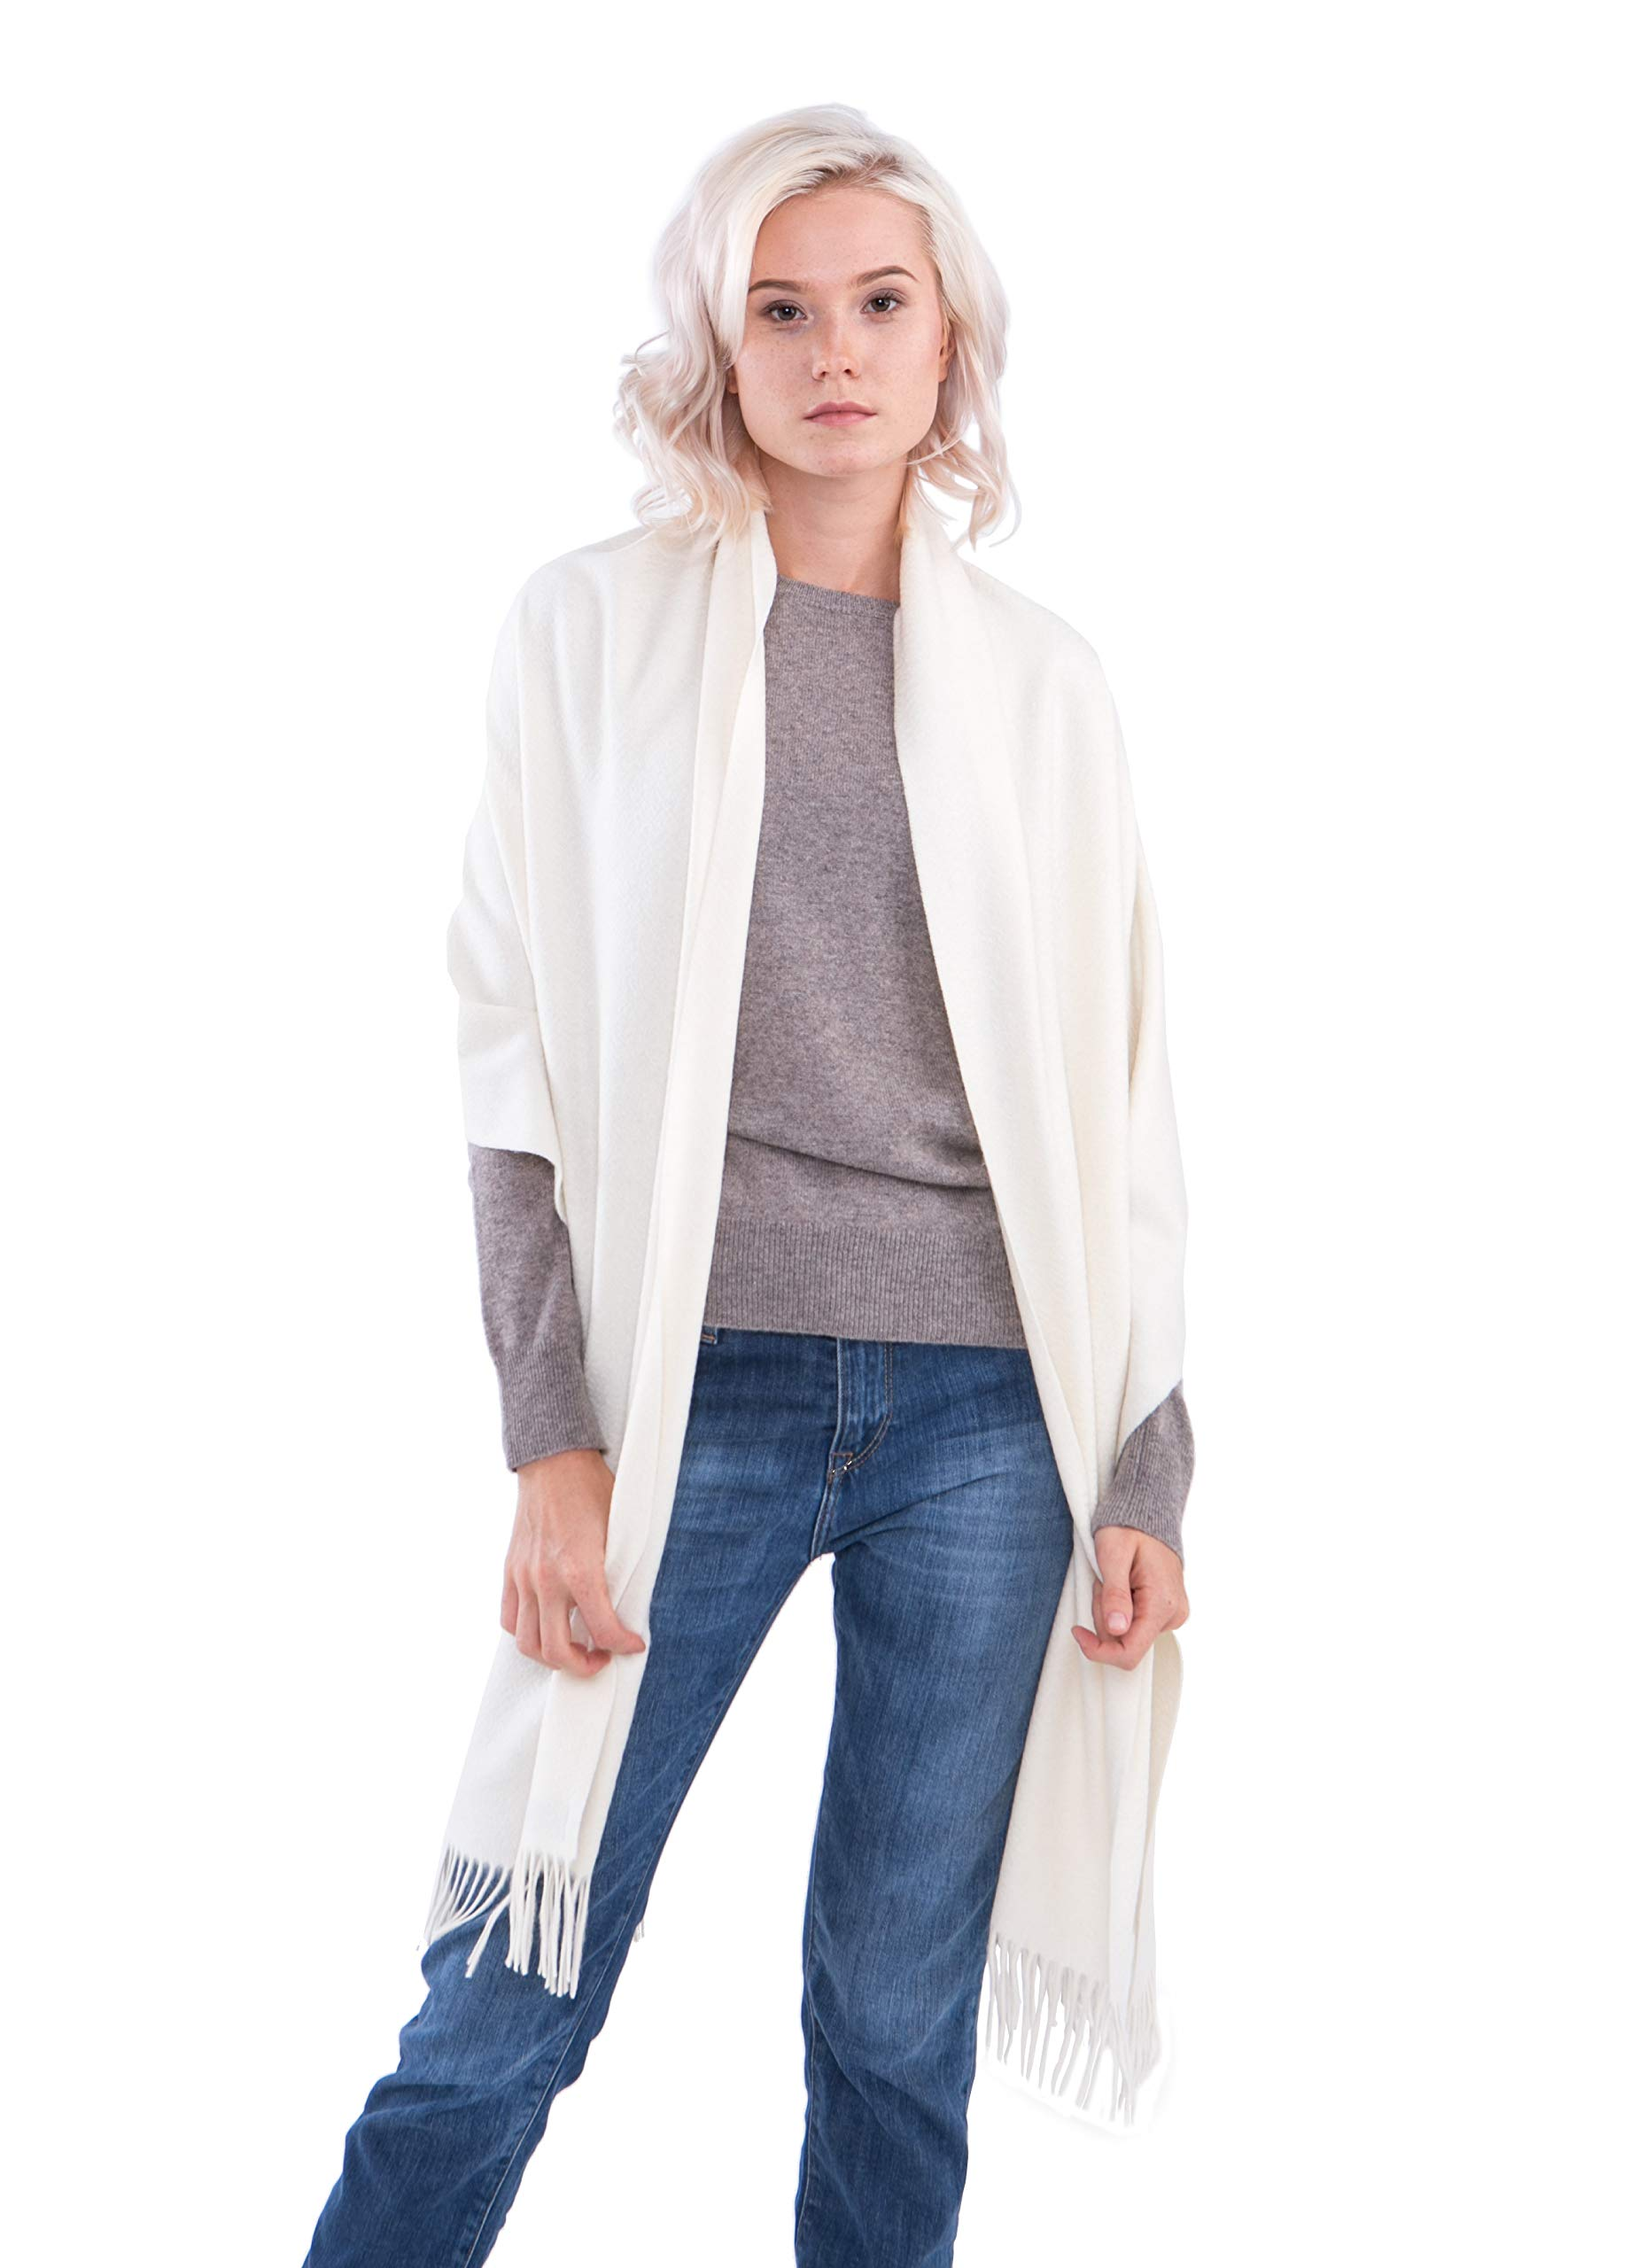 cashmere 4 U Women's 100% Cashmere Wrap for Travel Shawl Stole - Extra Large Scarf for Winter (Off-White)